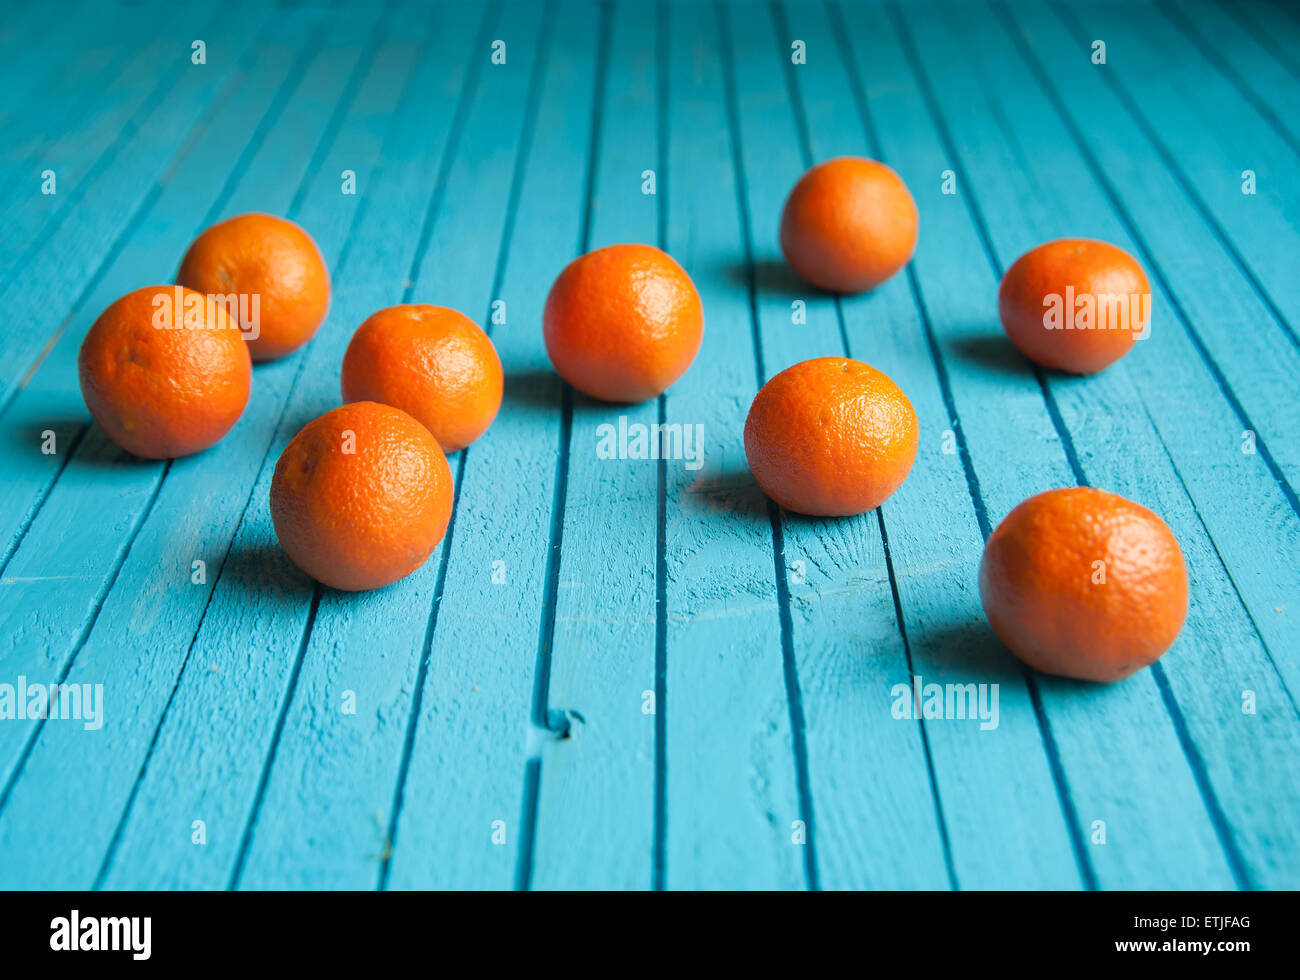 many tangerine lie on a wooden, blue table - Stock Image